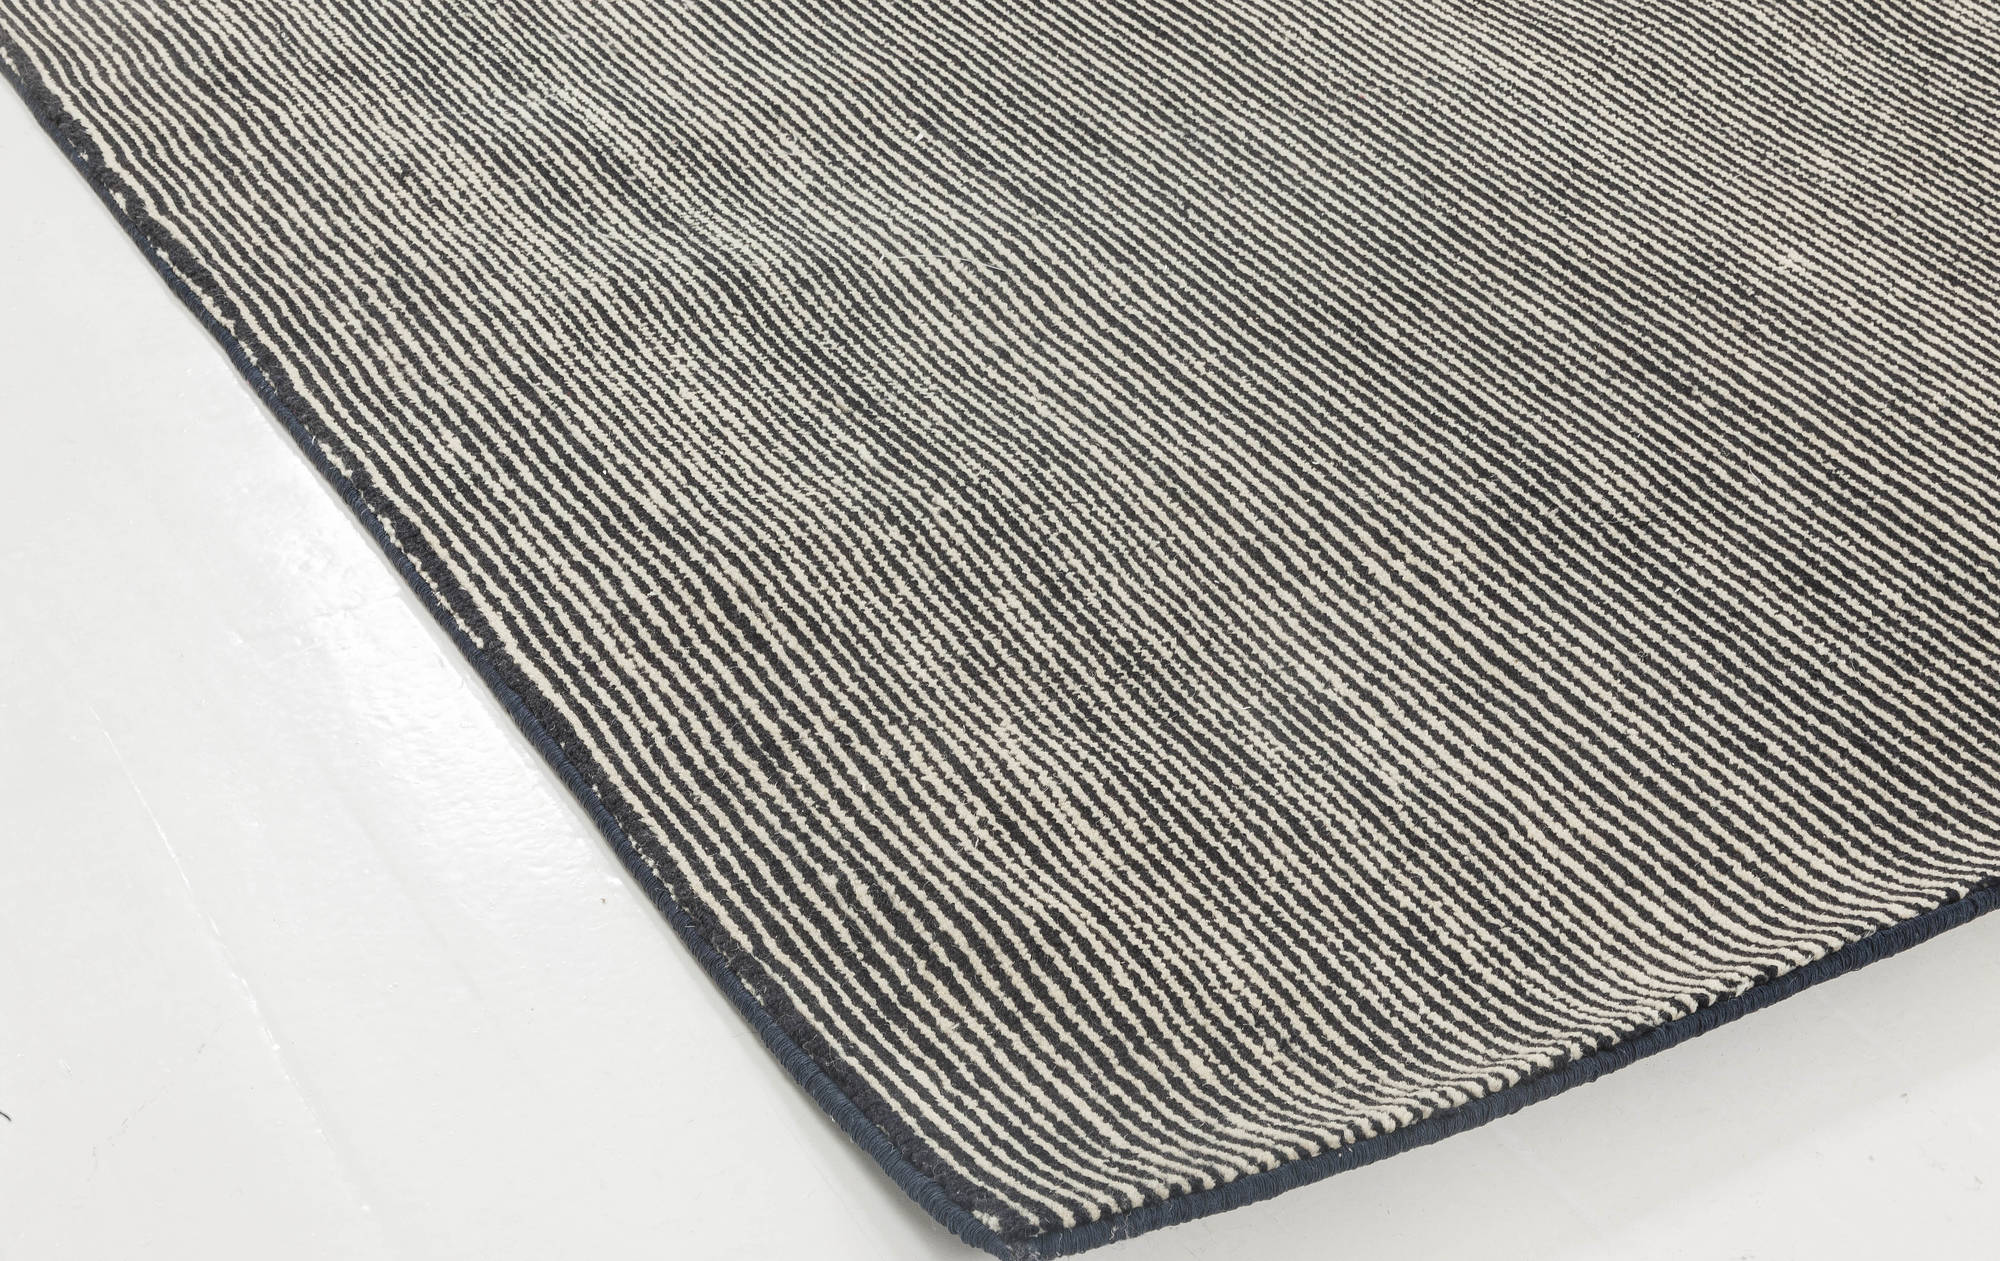 Hand Tufted Rug N11695 by DLB